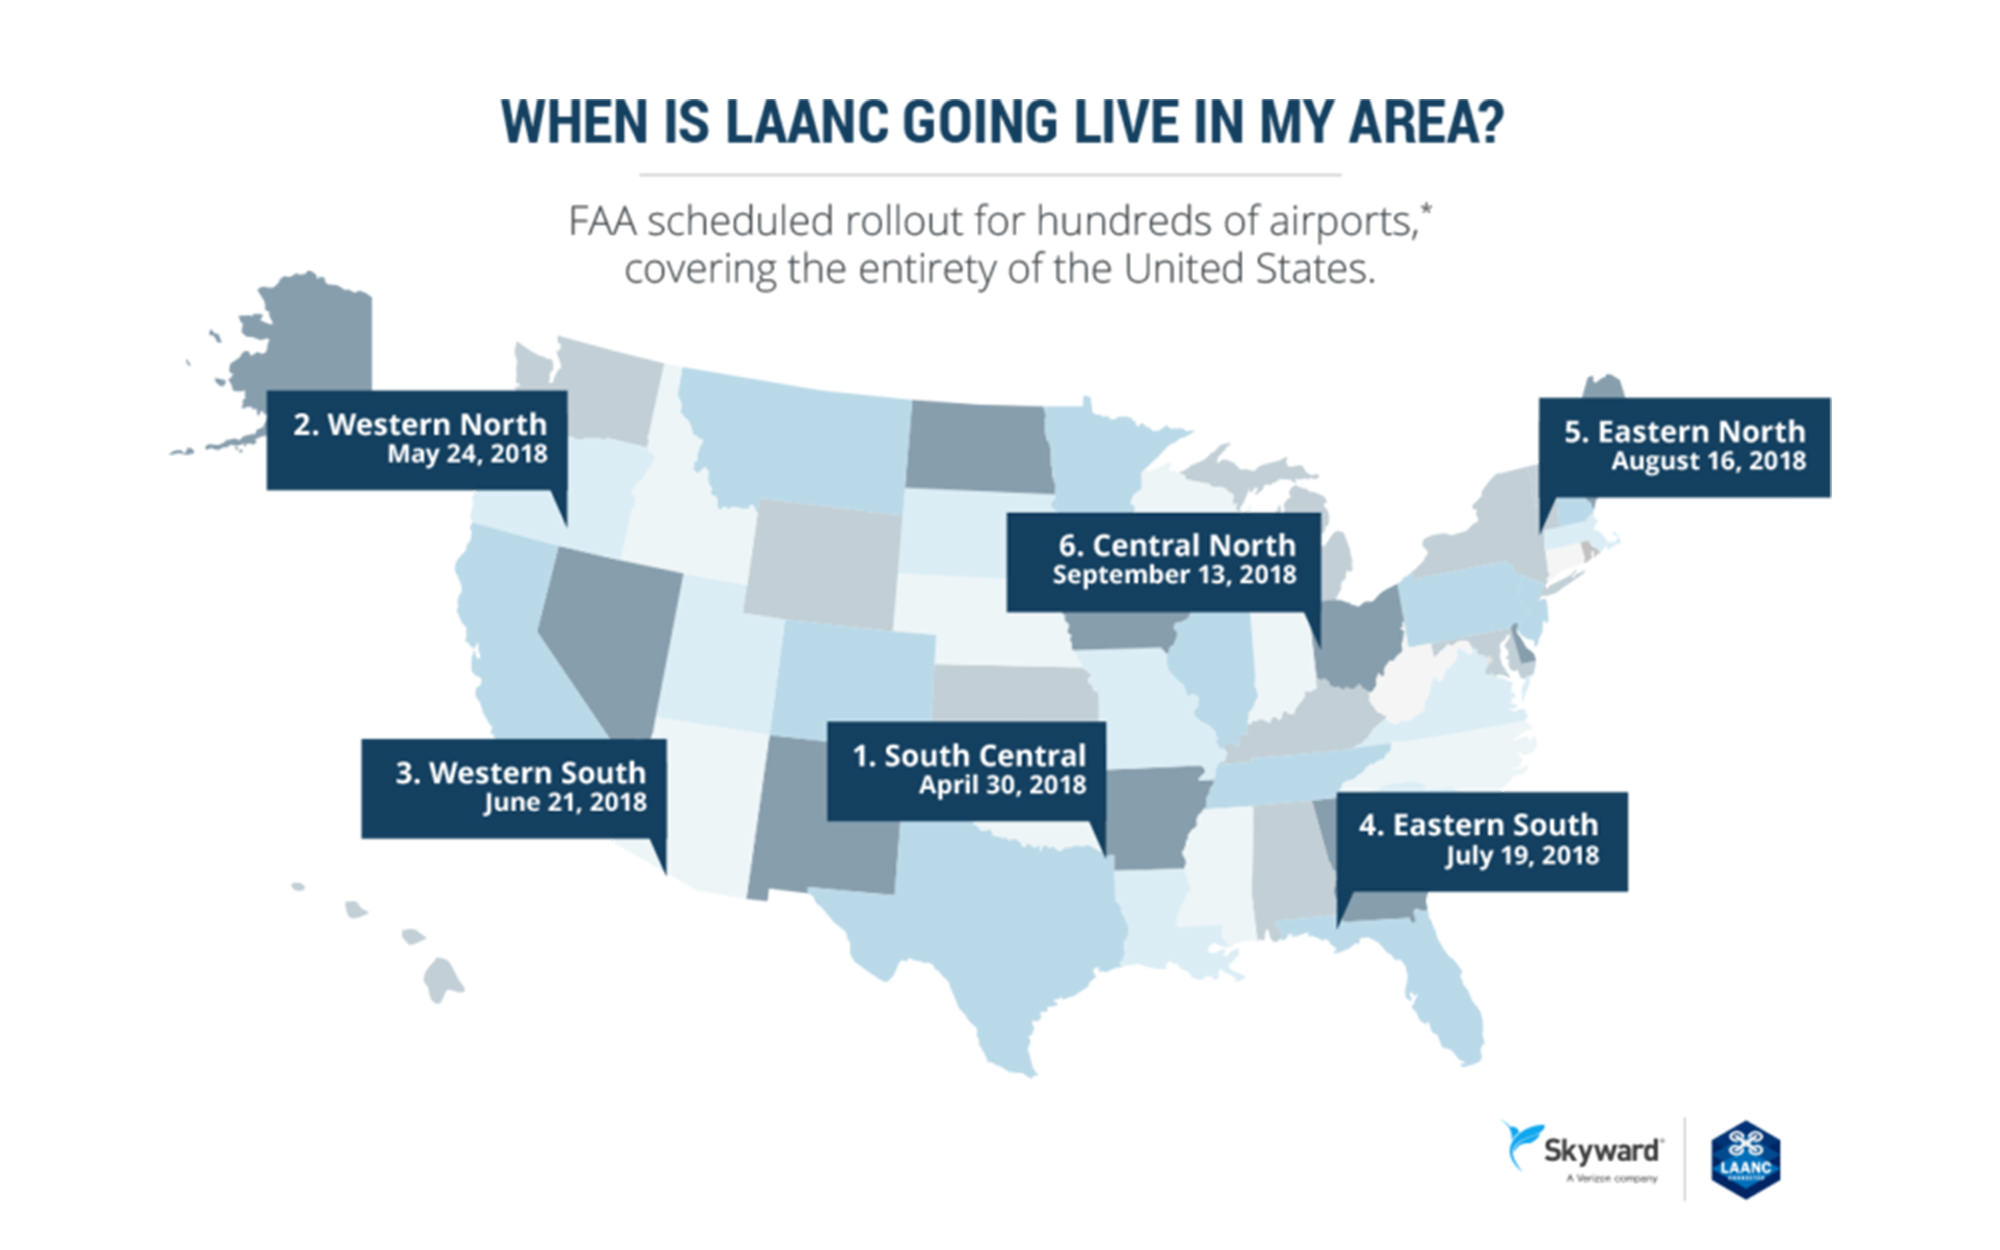 FAA begins the expansion of the LAANC program to include 300 air traffic facilities covering approximately 500 airports